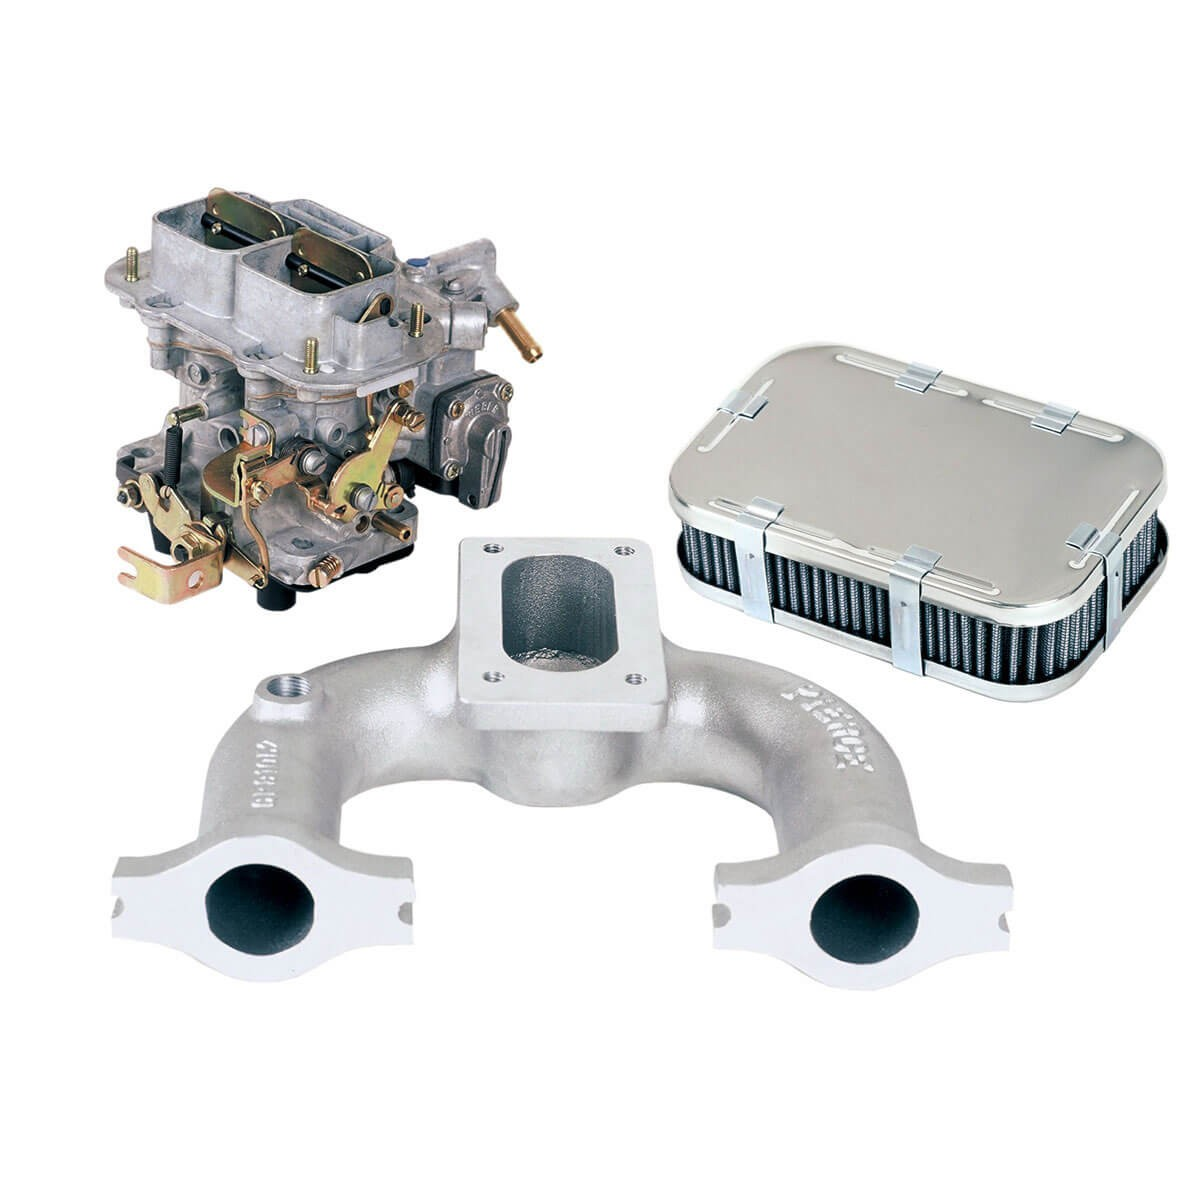 Weber Dgv Down-draft Carburetor Conversion Kit - Carburetors - Fuel  Intake  U0026 Emissions